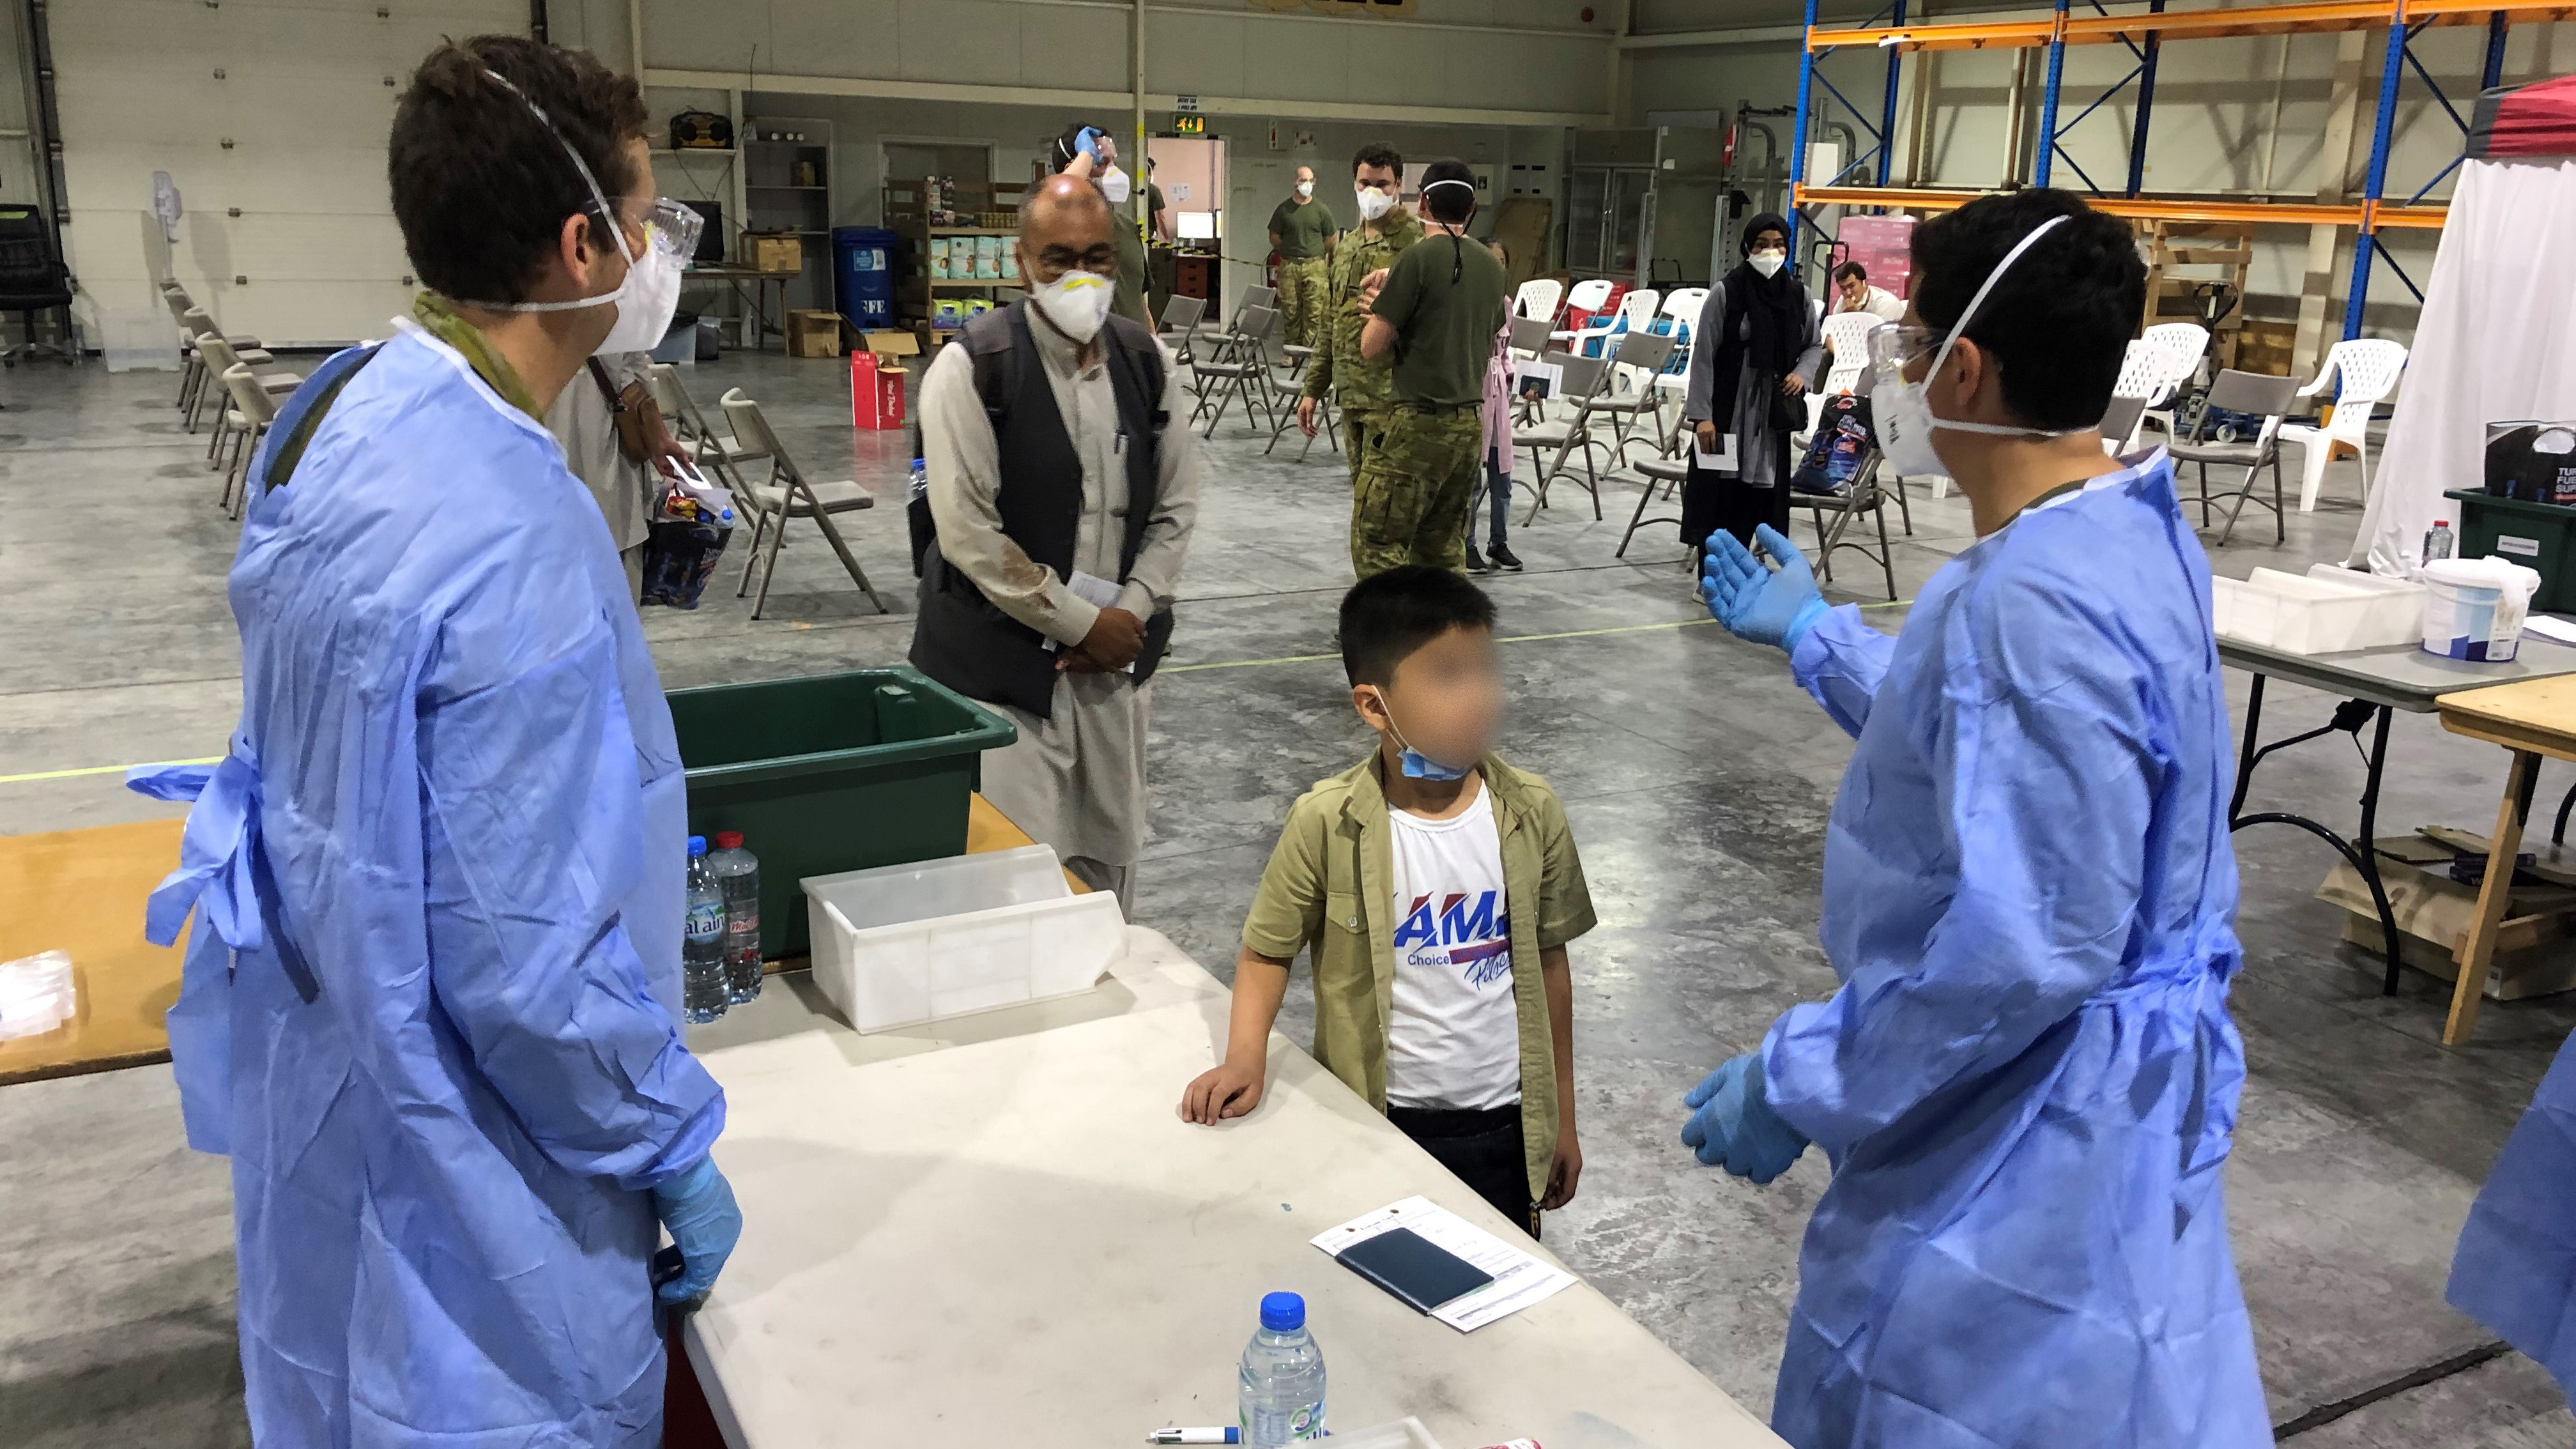 Australian Defence Force personnel process the first evacuees from Kabul, Afghanistan at Australia's main base in the Middle East region.